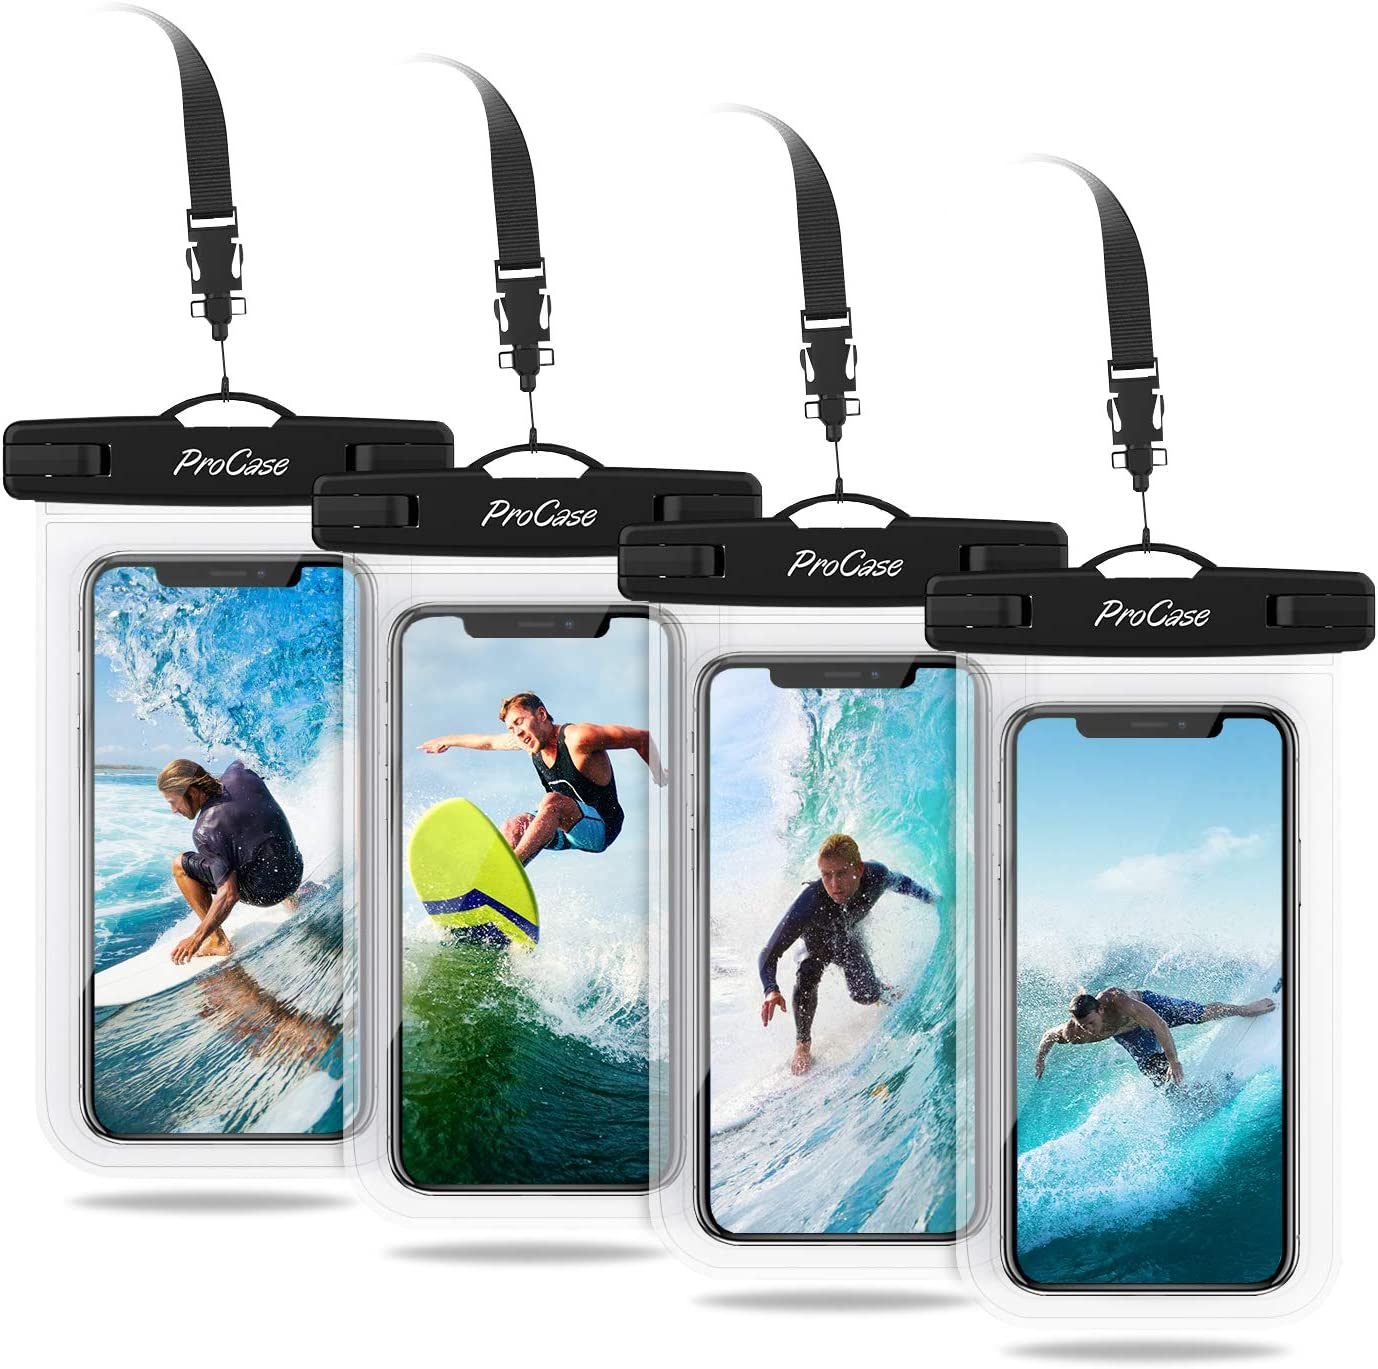 ProCase Universal Cellphone Waterproof Pouch Dry Bag Underwater Case for iPhone 13 12 Pro Max 11 Pro Max 13 Mini Xs Max XR X 8 7 6, Galaxy S20 Ultra S10 Note10 up to 7